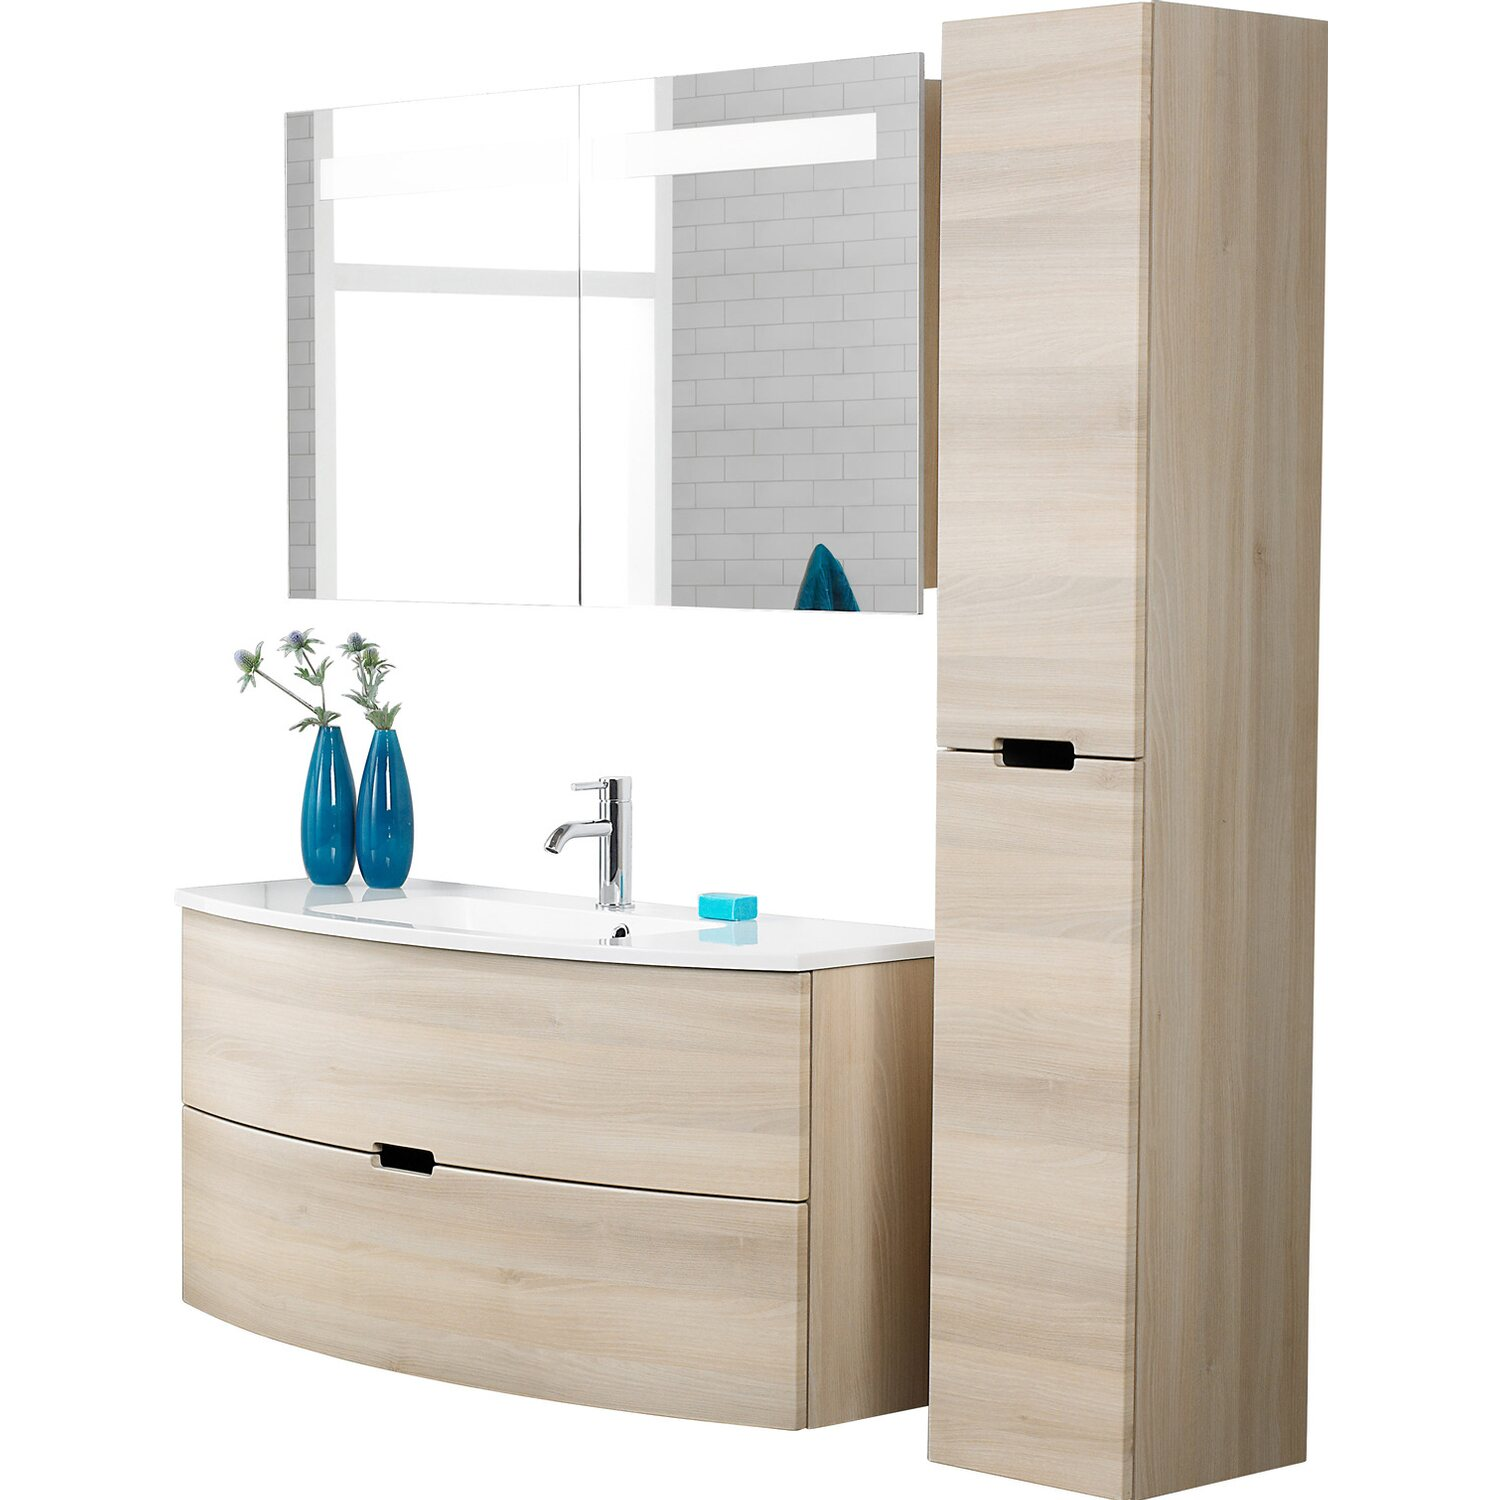 scanbad badm bel set 90 cm mit spiegelschrank modern sand. Black Bedroom Furniture Sets. Home Design Ideas